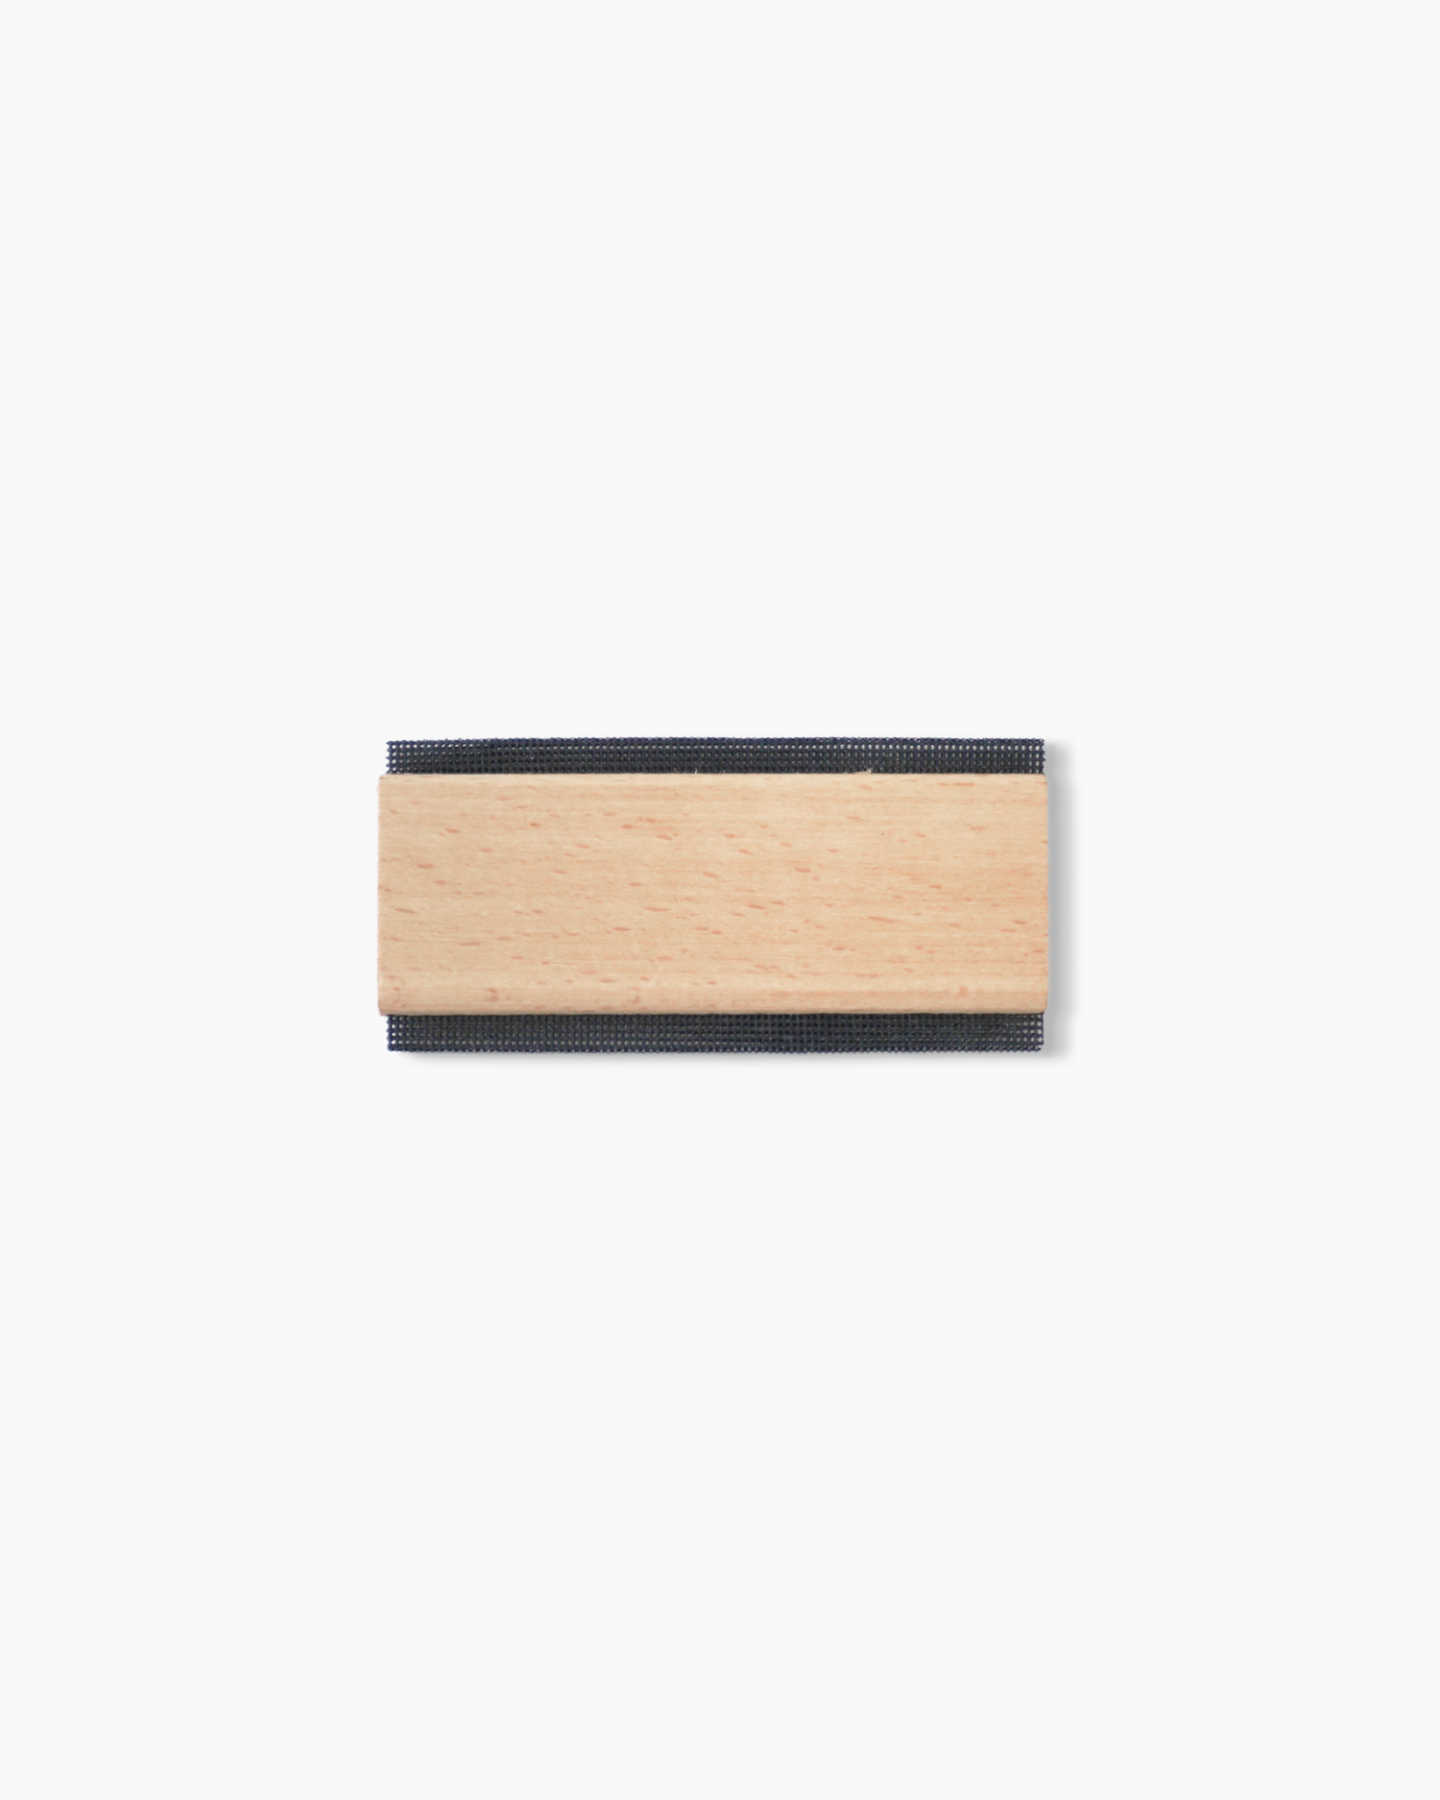 Pair With - Cashmere Comb - Natural Wood